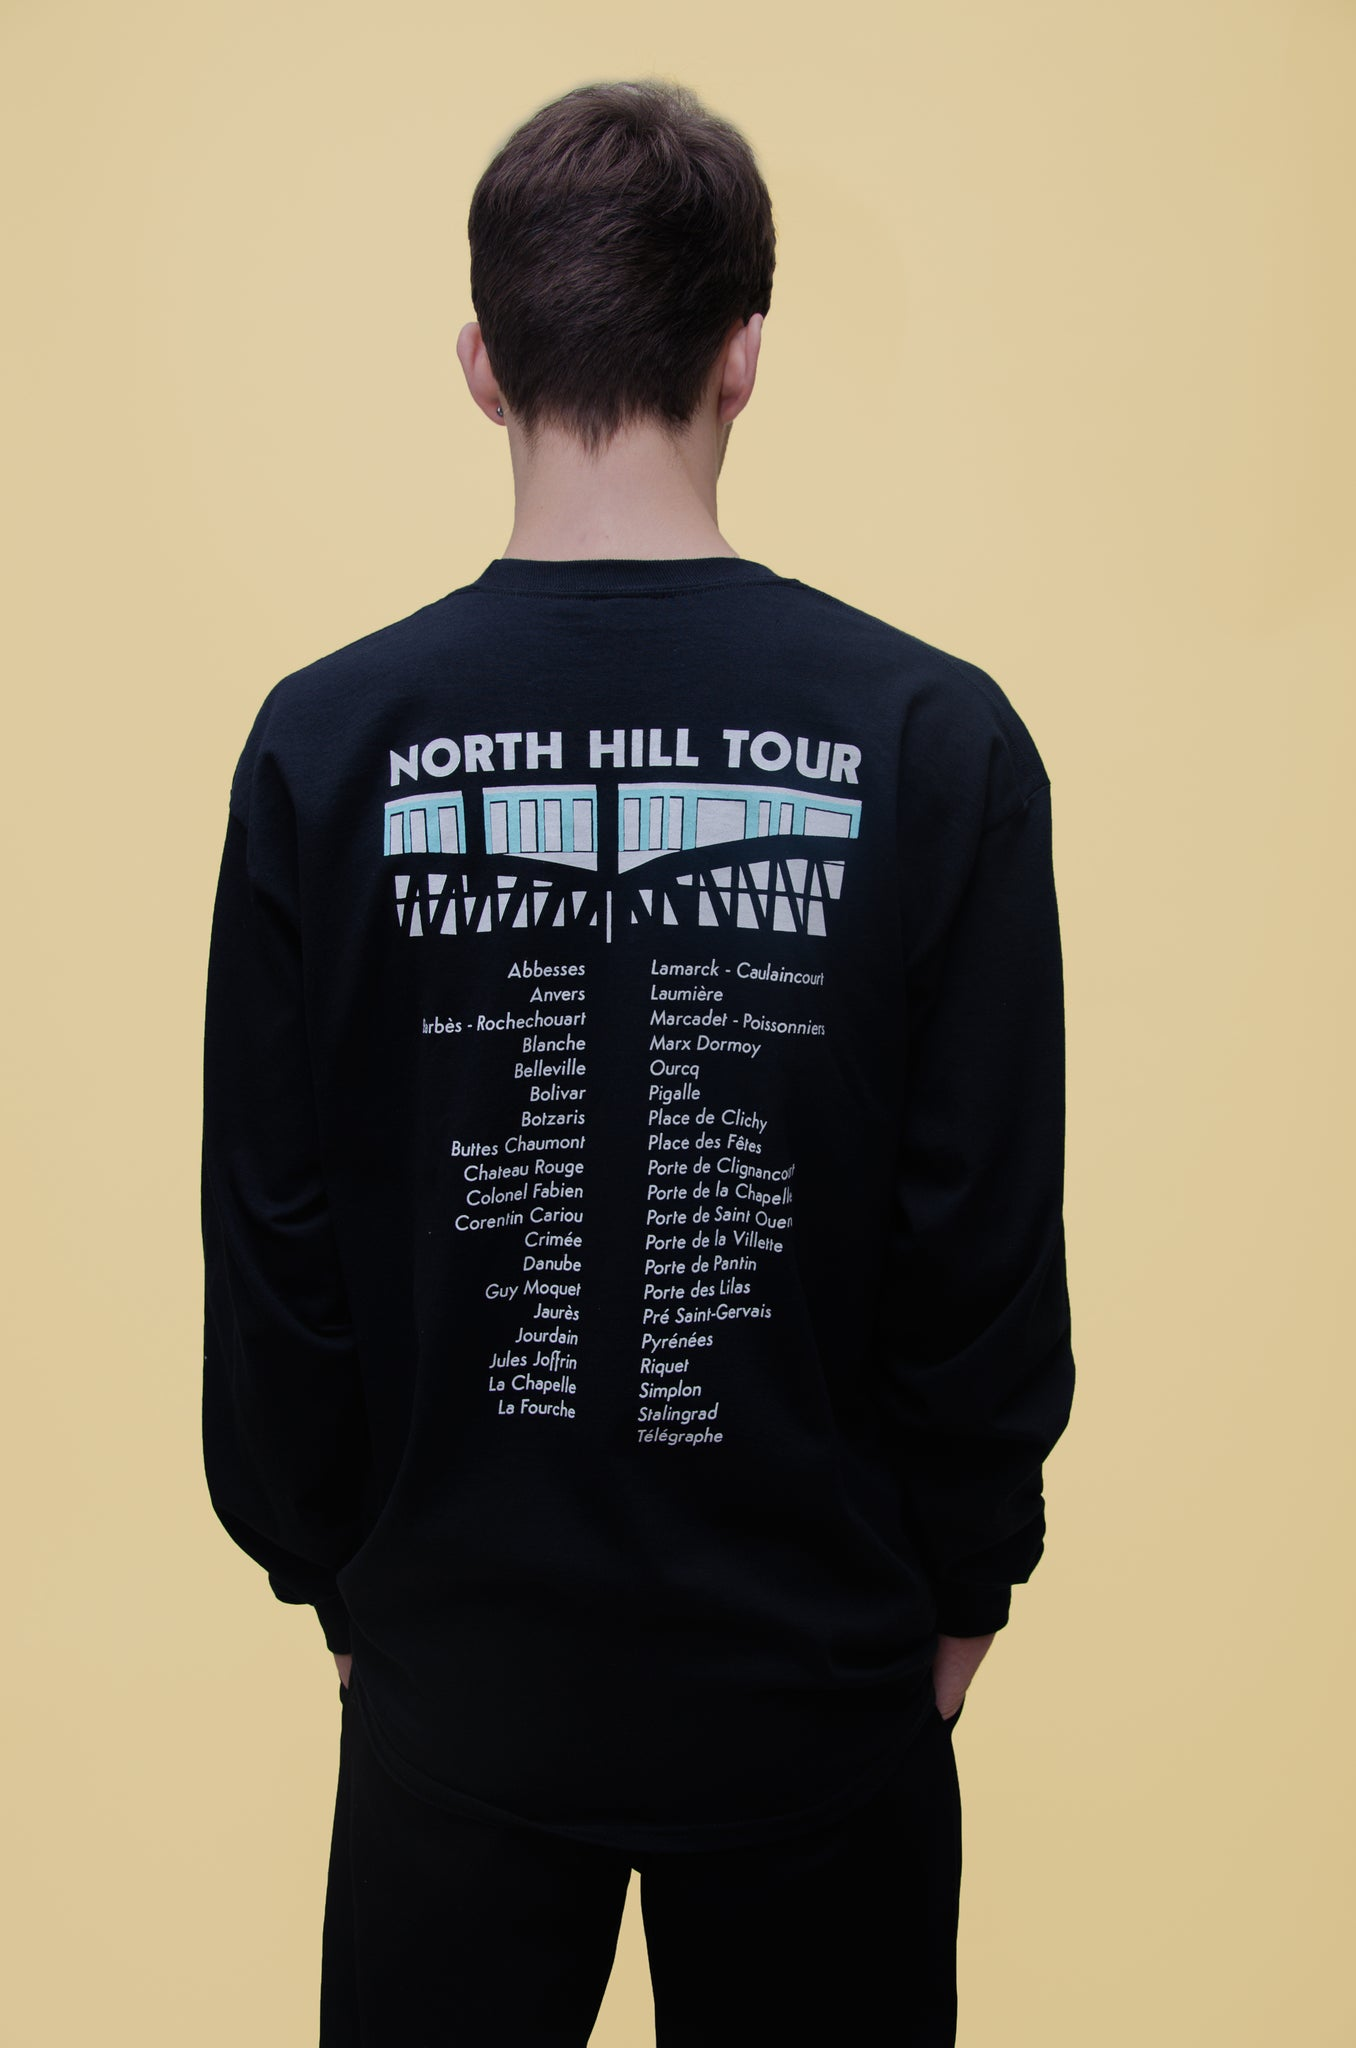 The North Hill Tour Longsleeve Tee is a made in France t-shirt